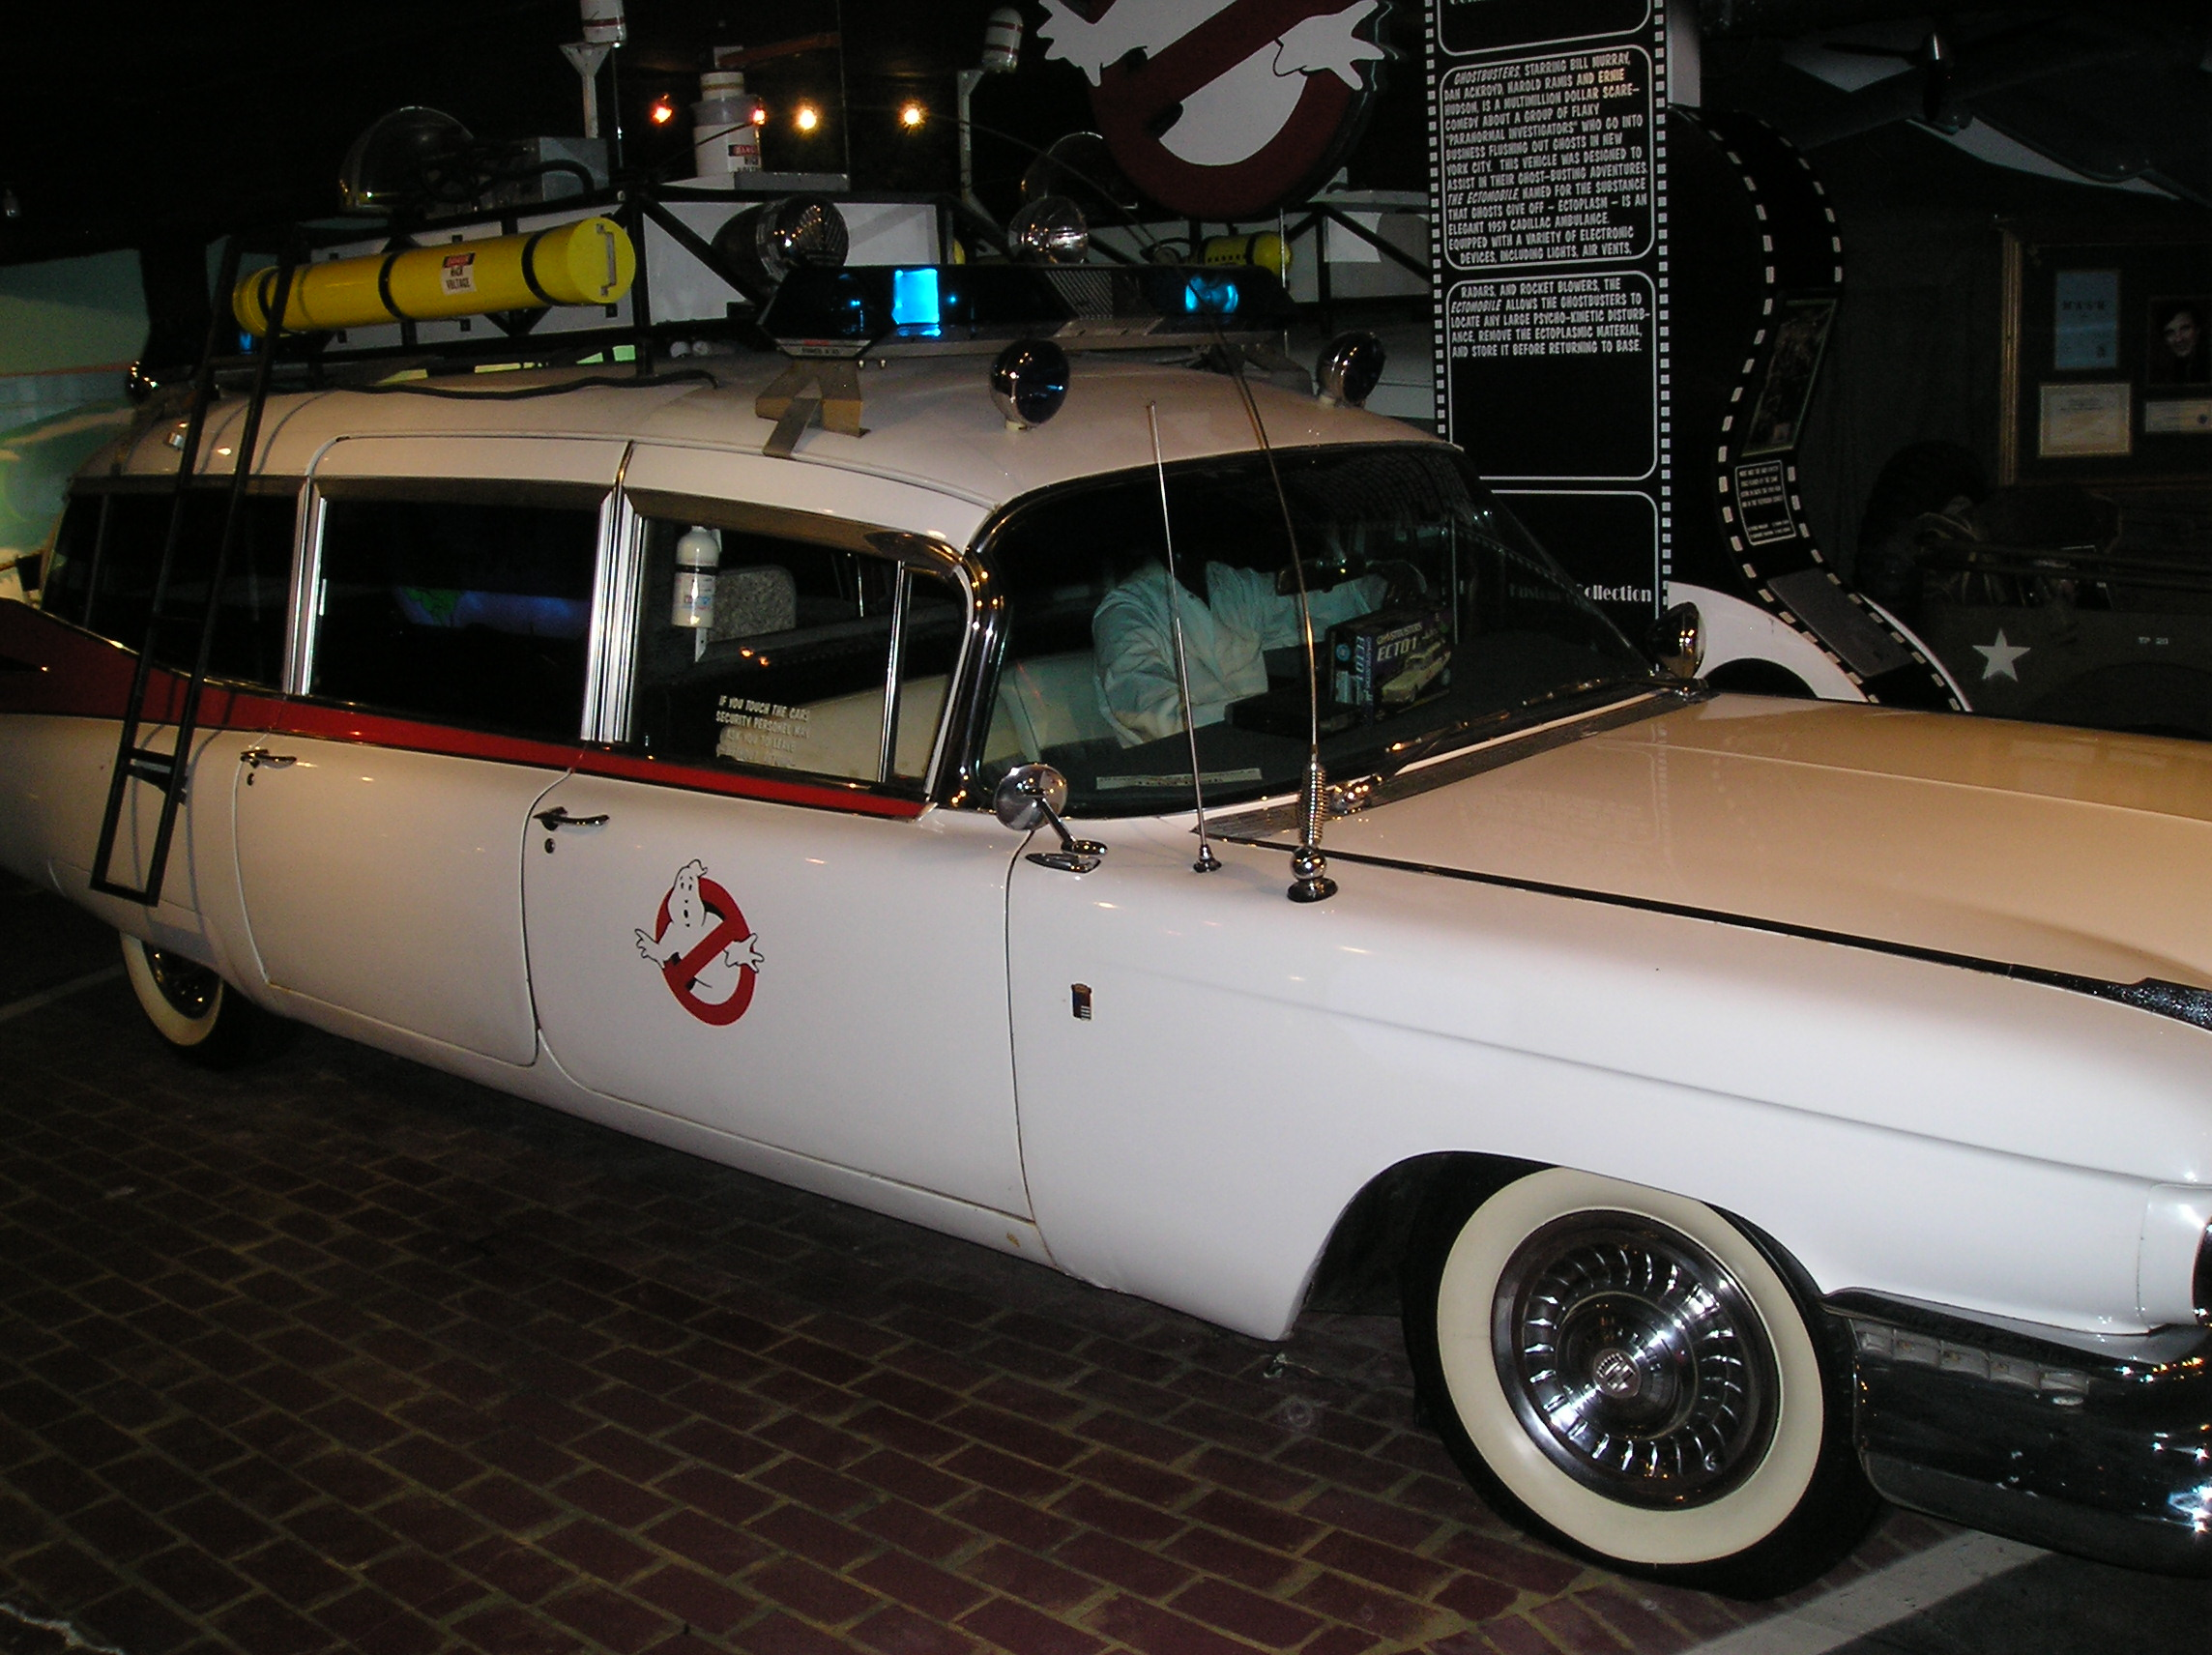 1959 Cadillac Ambulance, Bill